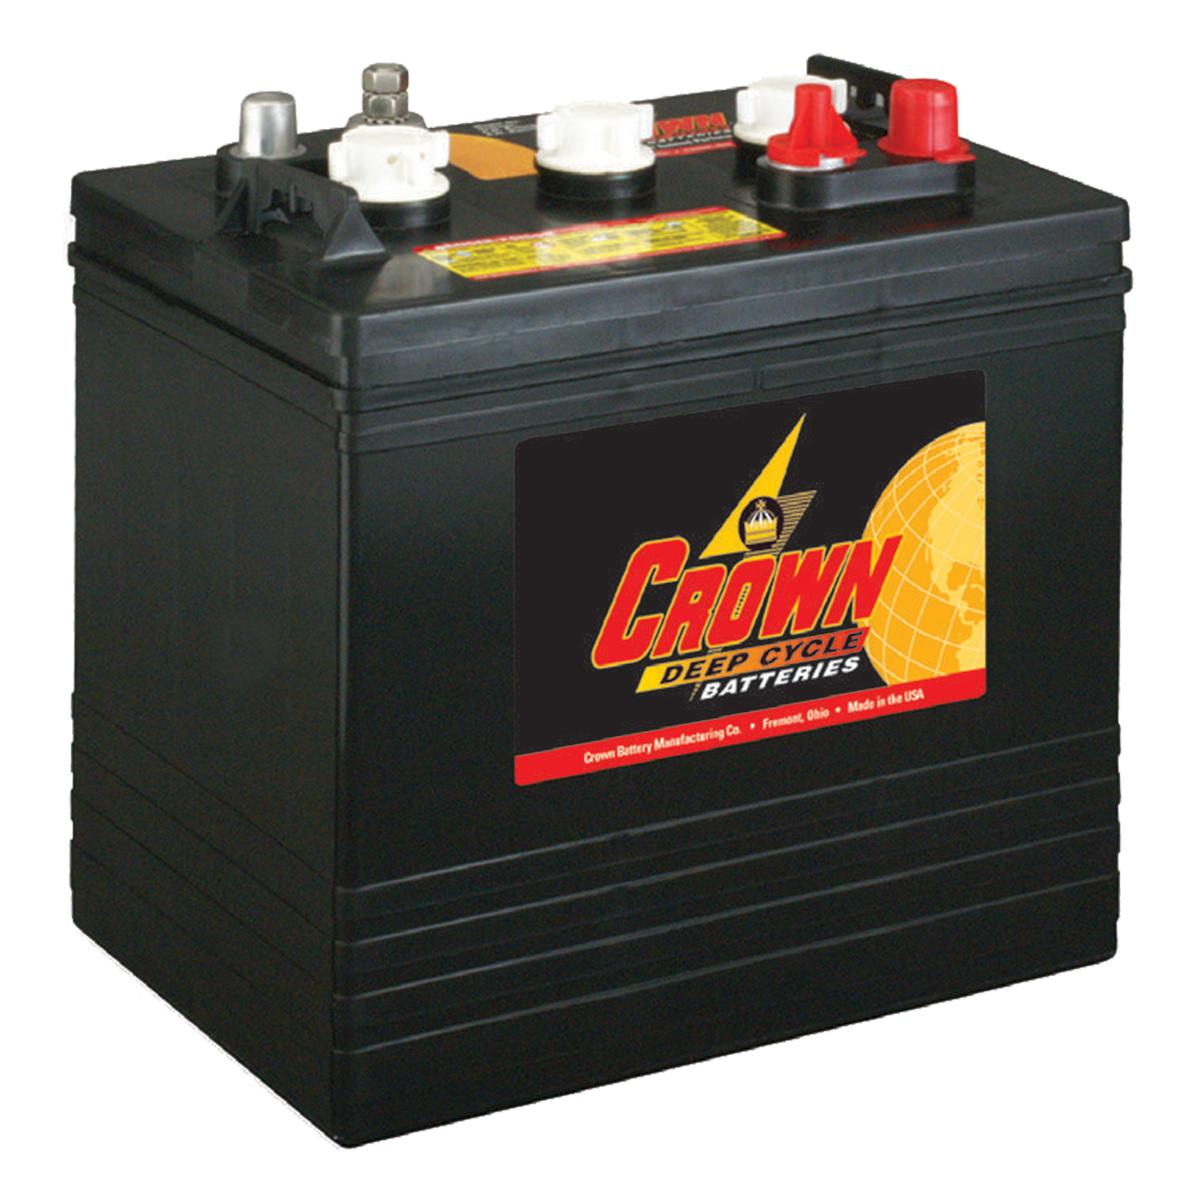 cr 205 crown 6v 205ah deep cycle battery. Black Bedroom Furniture Sets. Home Design Ideas